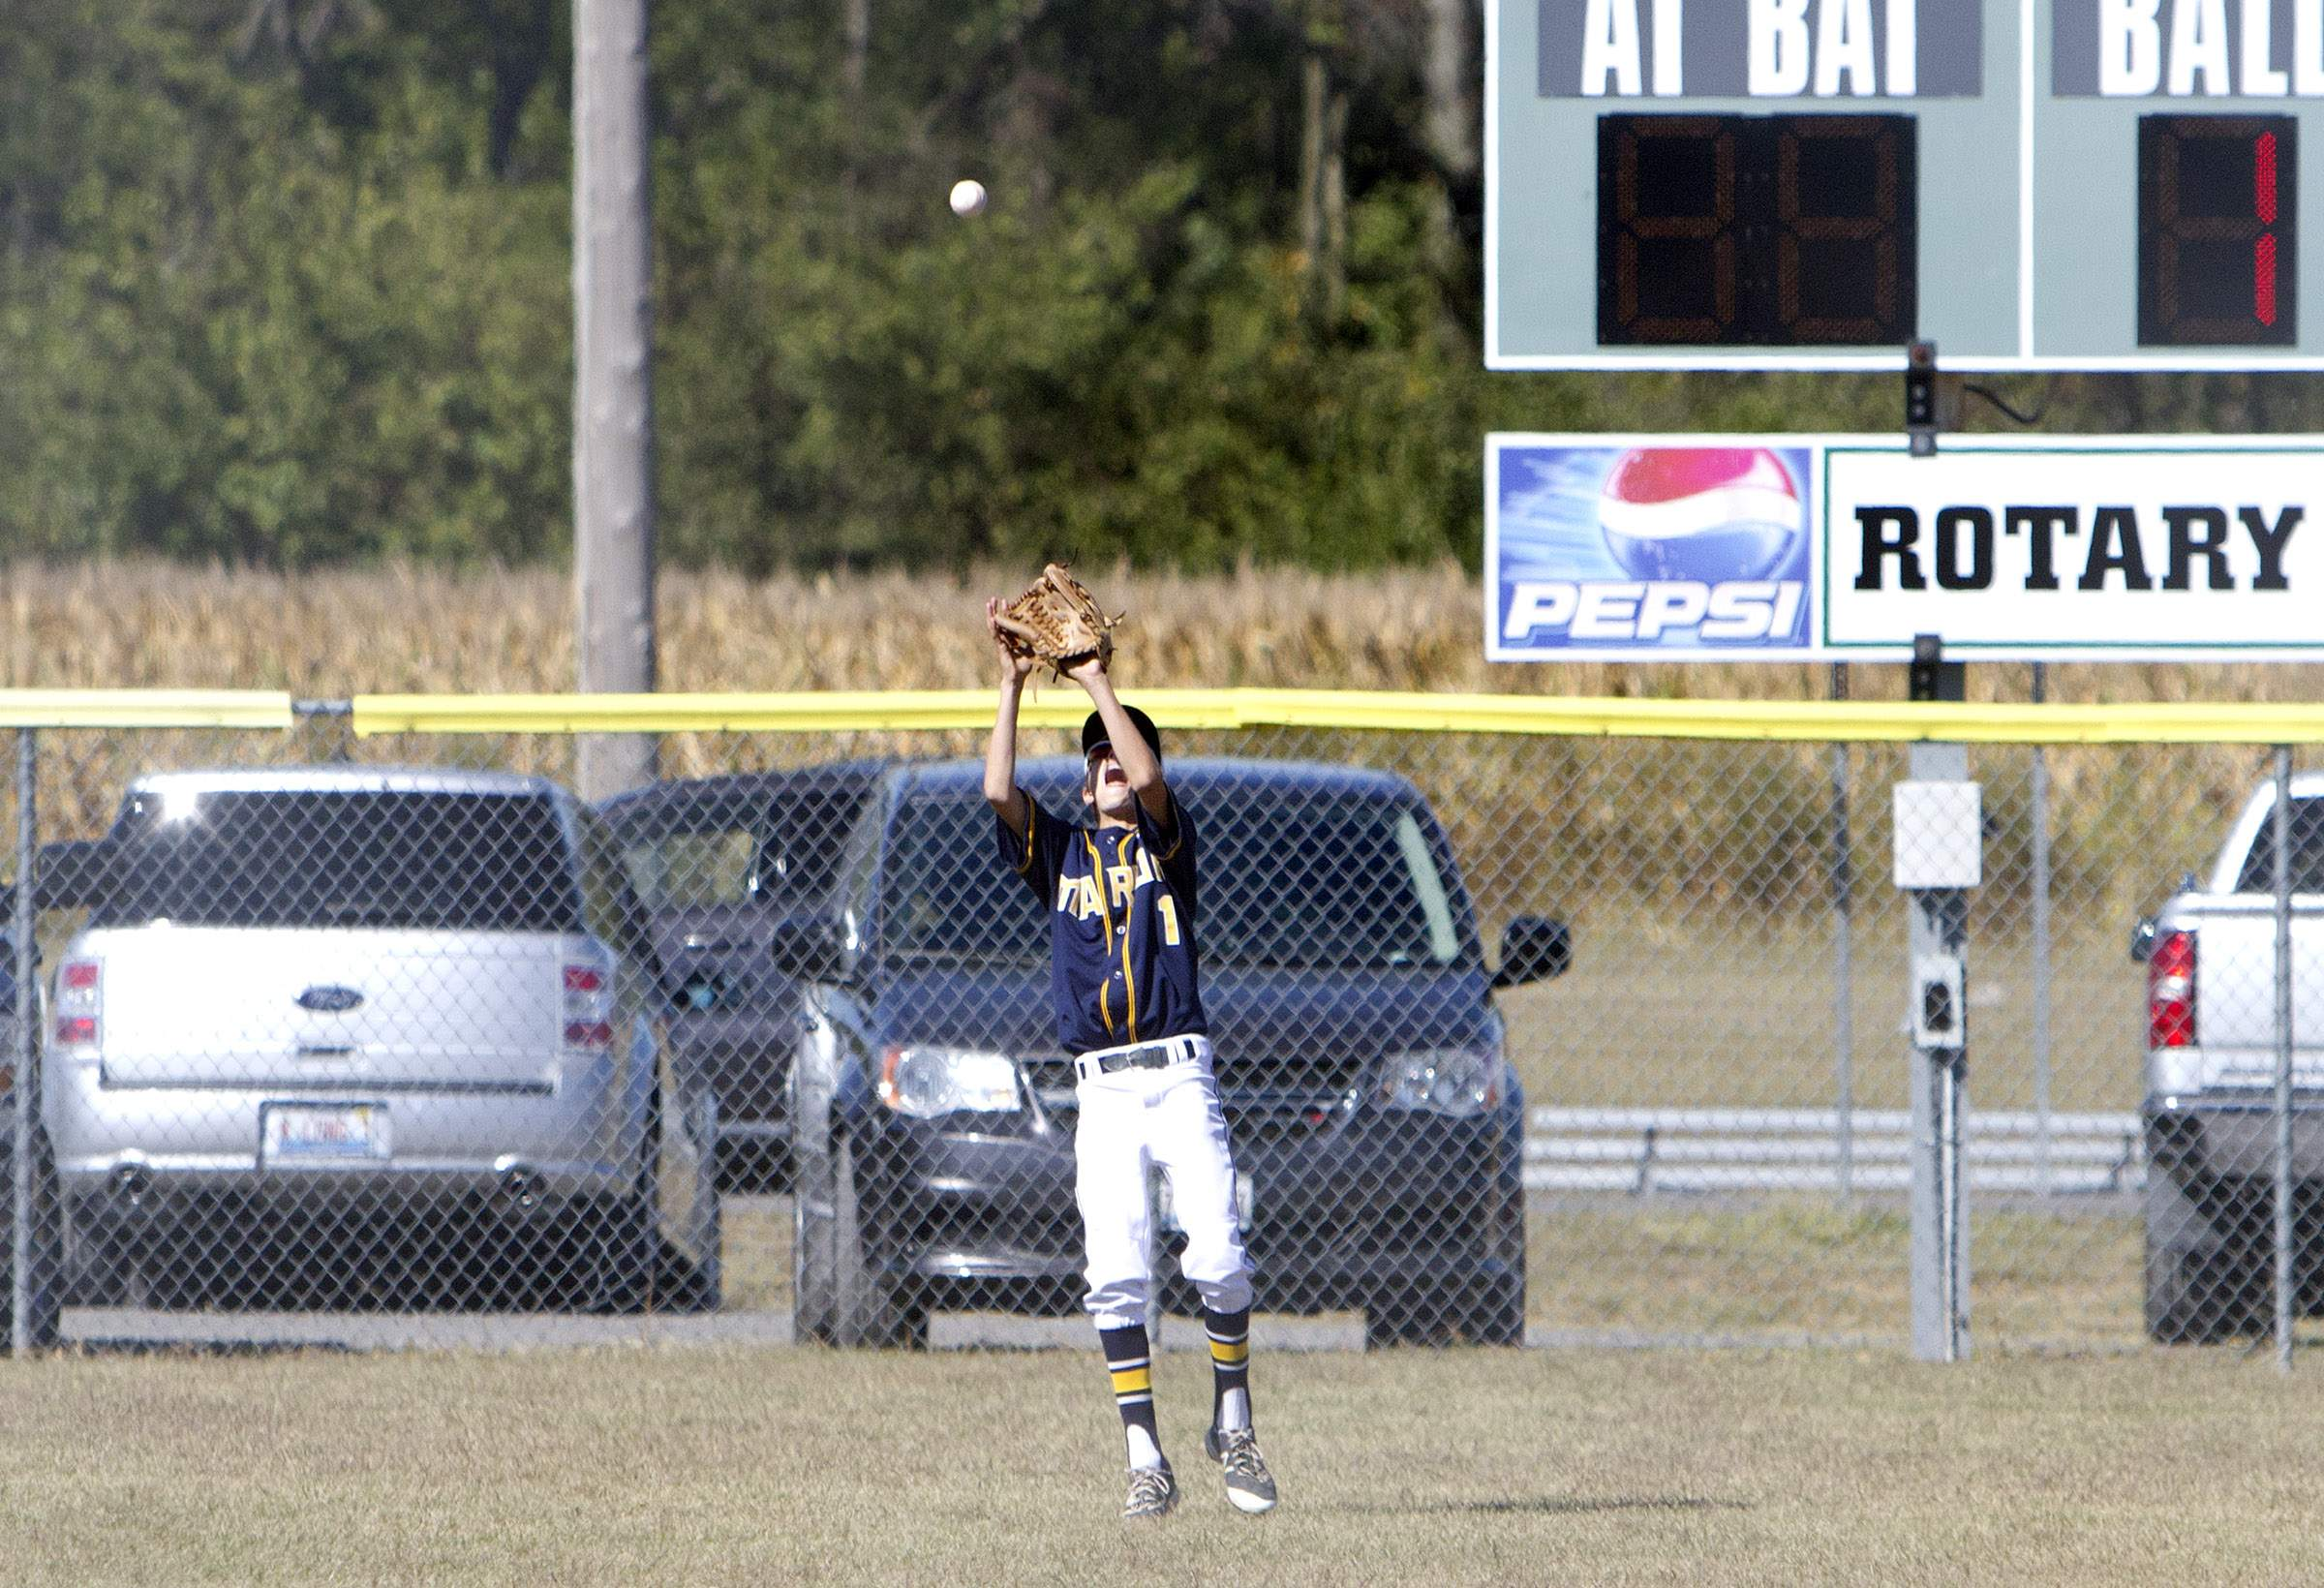 Walker Fox makes a catch in left field.